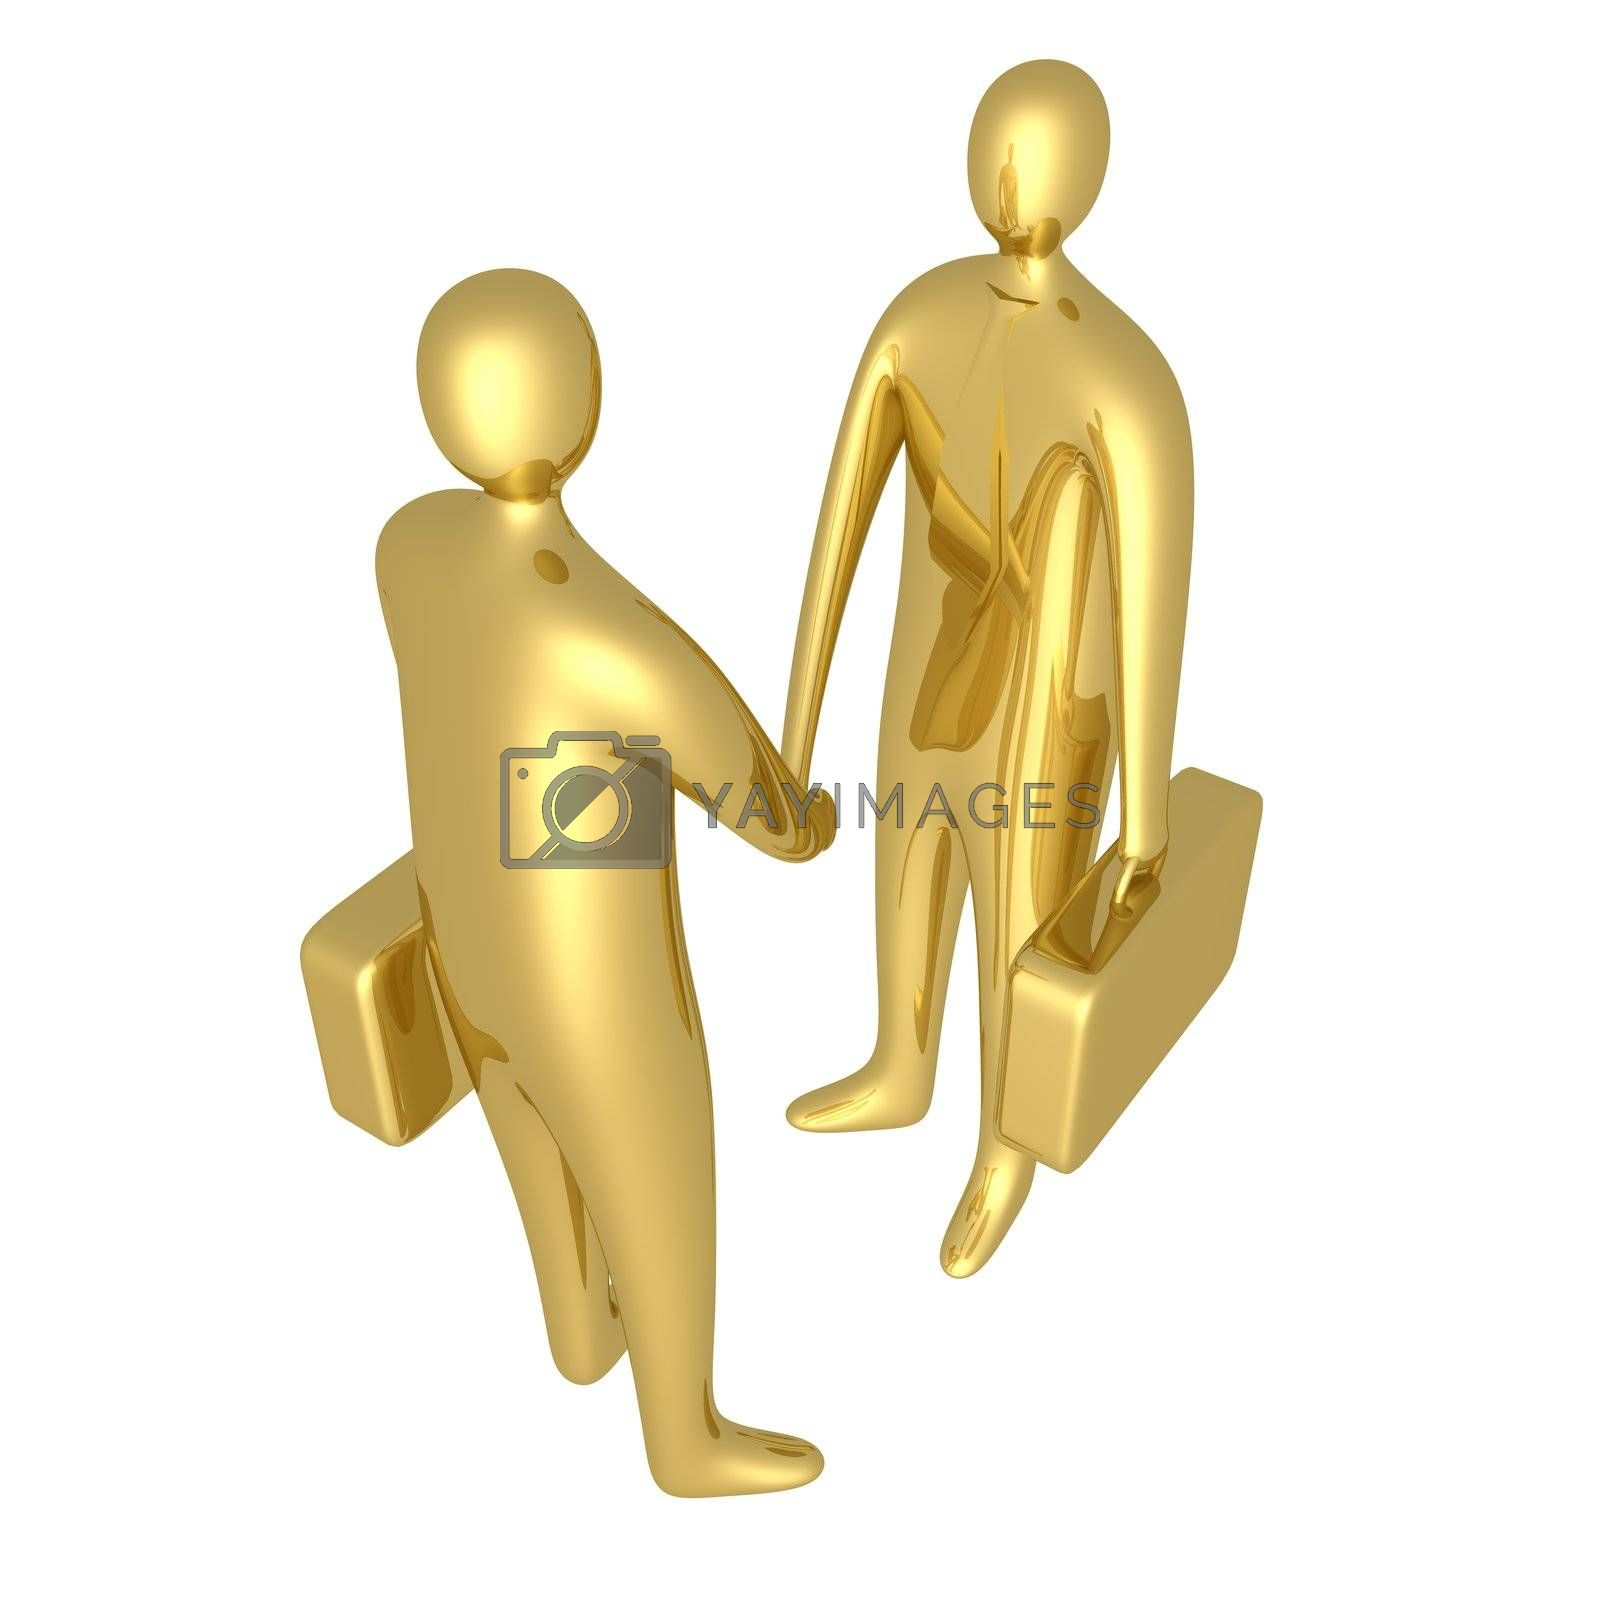 Royalty free image of Business Deal by 3pod